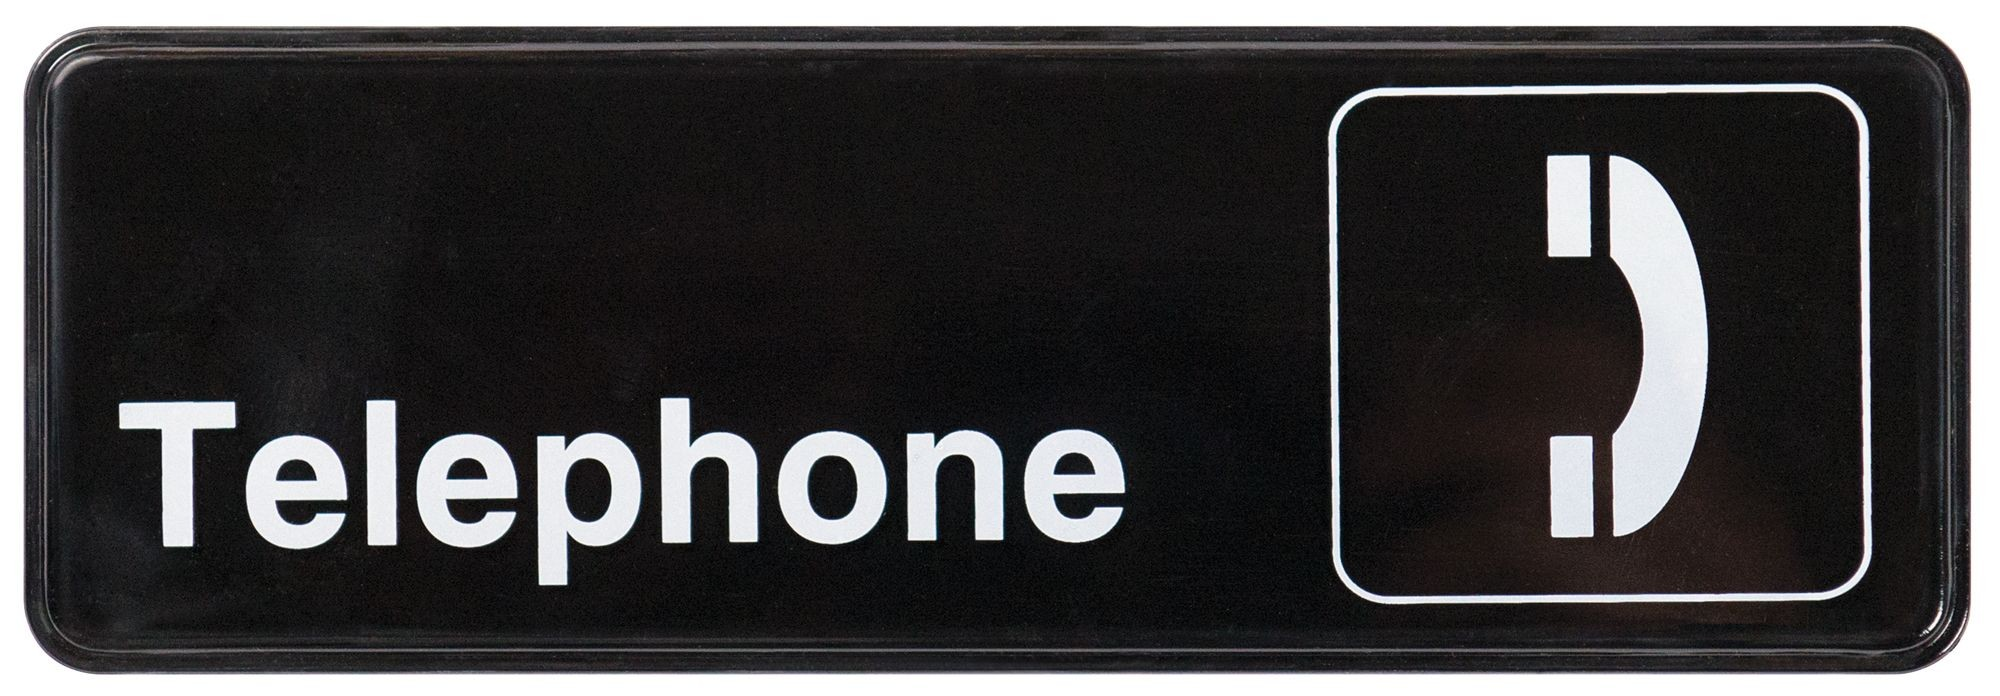 "Winco SGN-325 ""Telephone"" Informational Sign, 9"" x 3"""